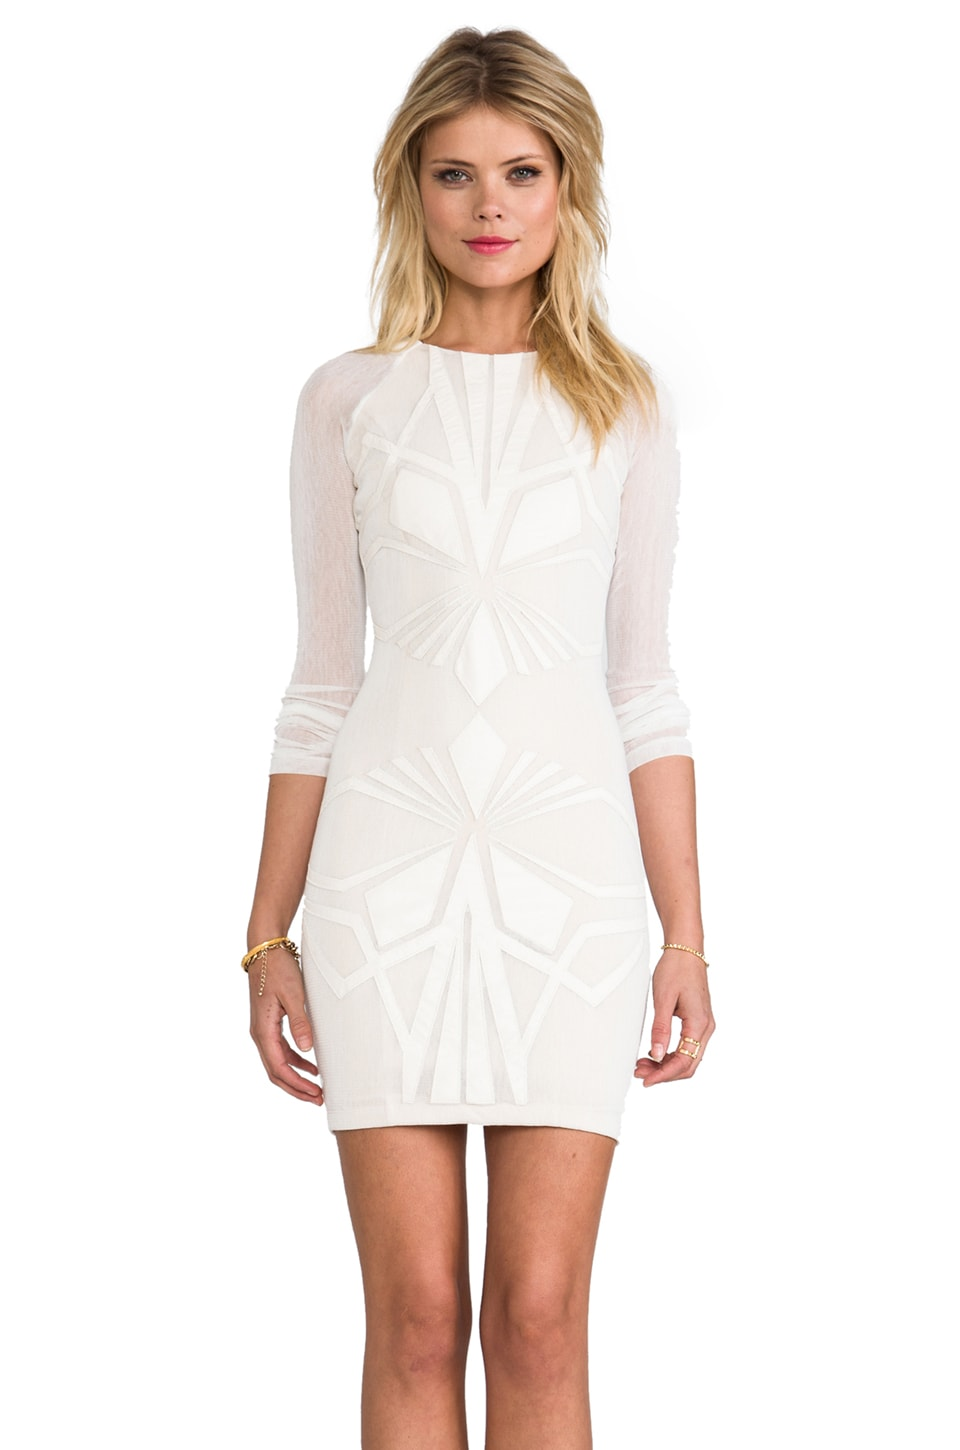 bless'ed are the meek Shapes Dress in Ivory